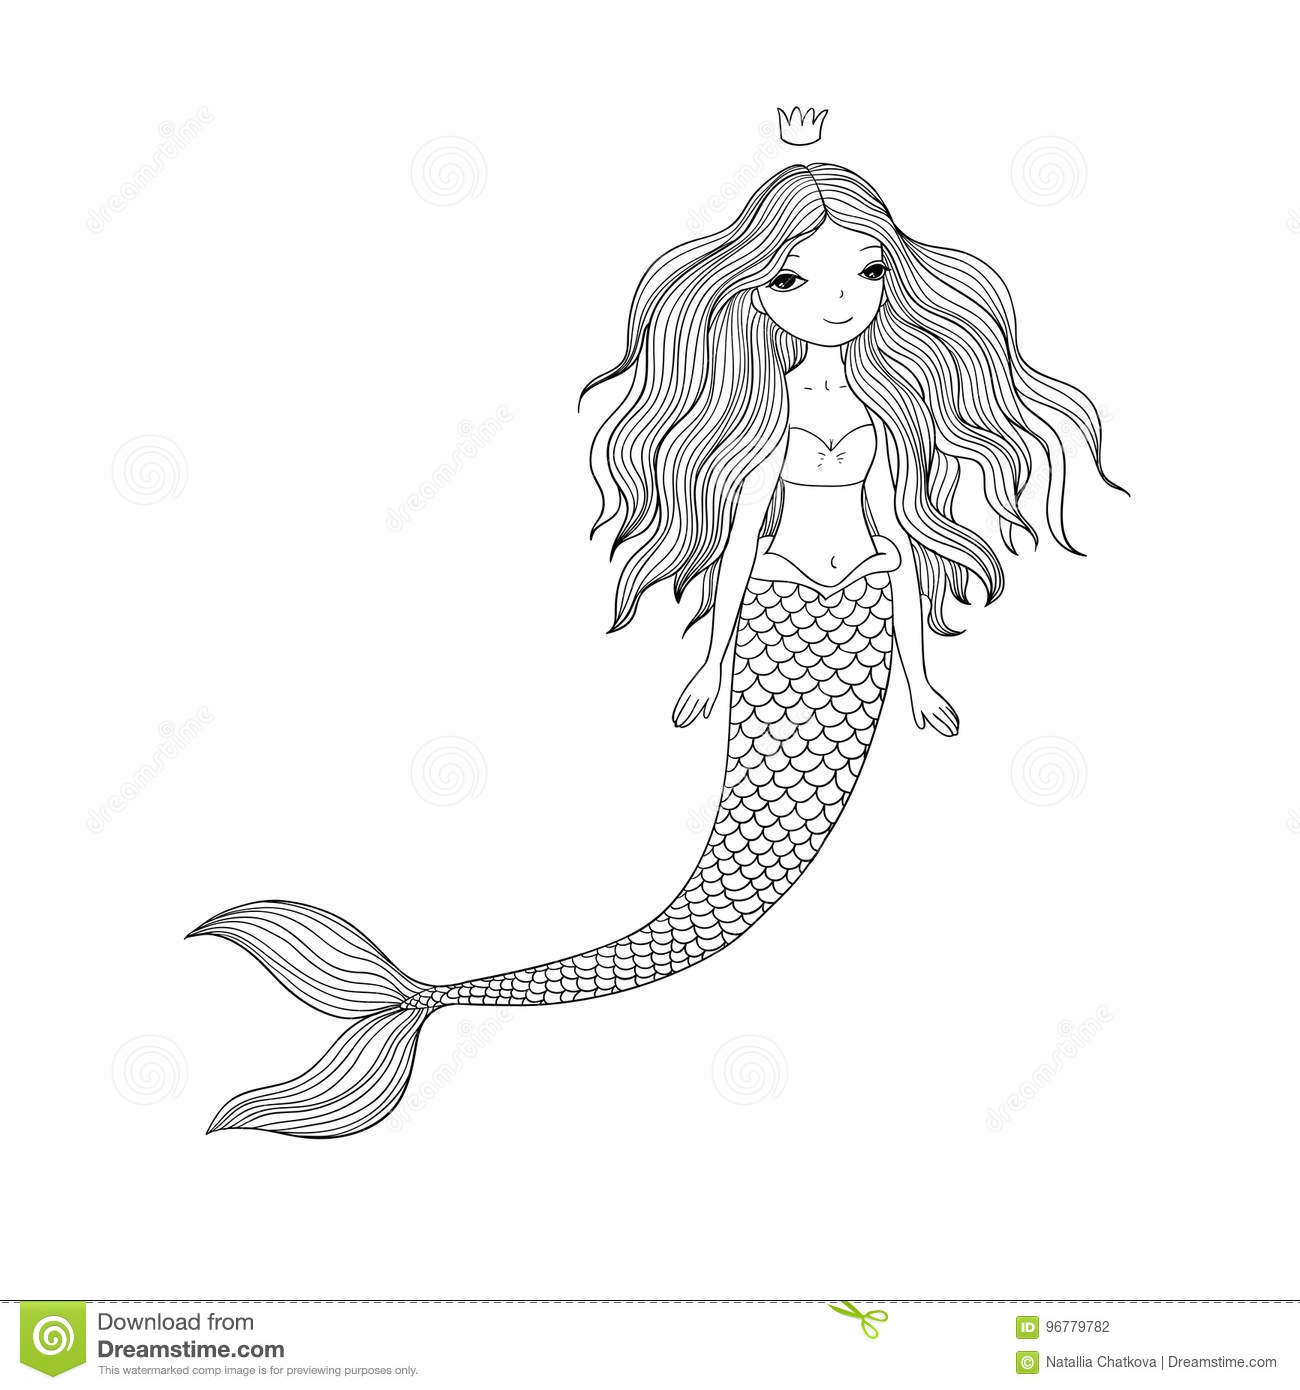 Beautiful Cute Cartoon Mermaid With Long Hair Siren Sea Theme Stock Vector Illustration Of Girl Character 96779782